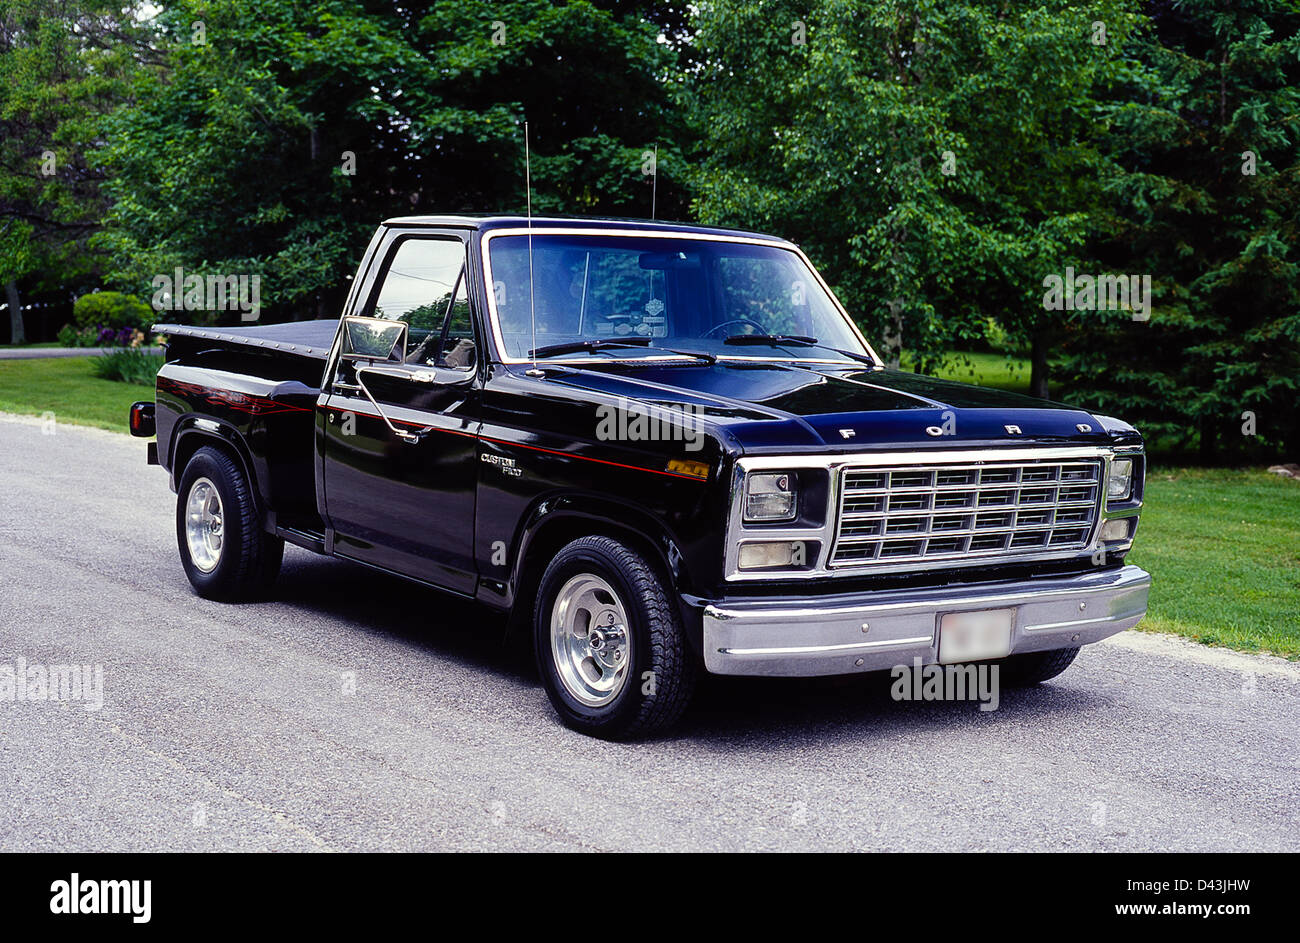 1980 ford f 100 pick up truck